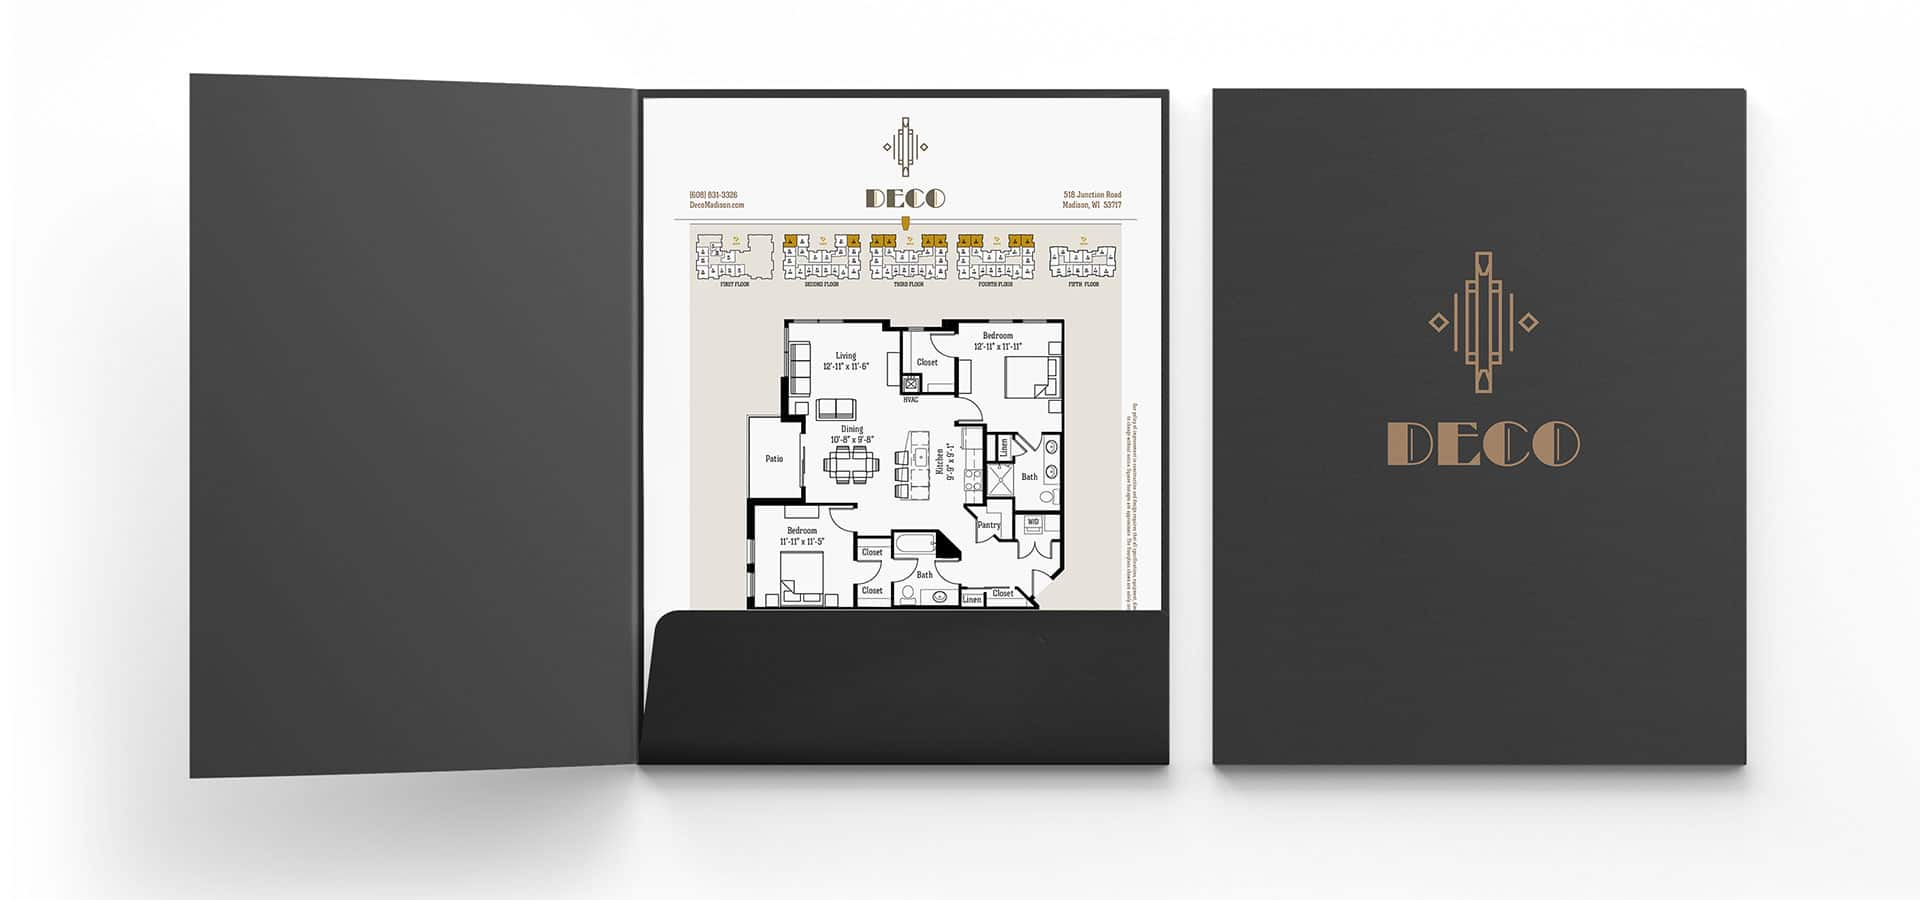 Folder design for Deco apartments